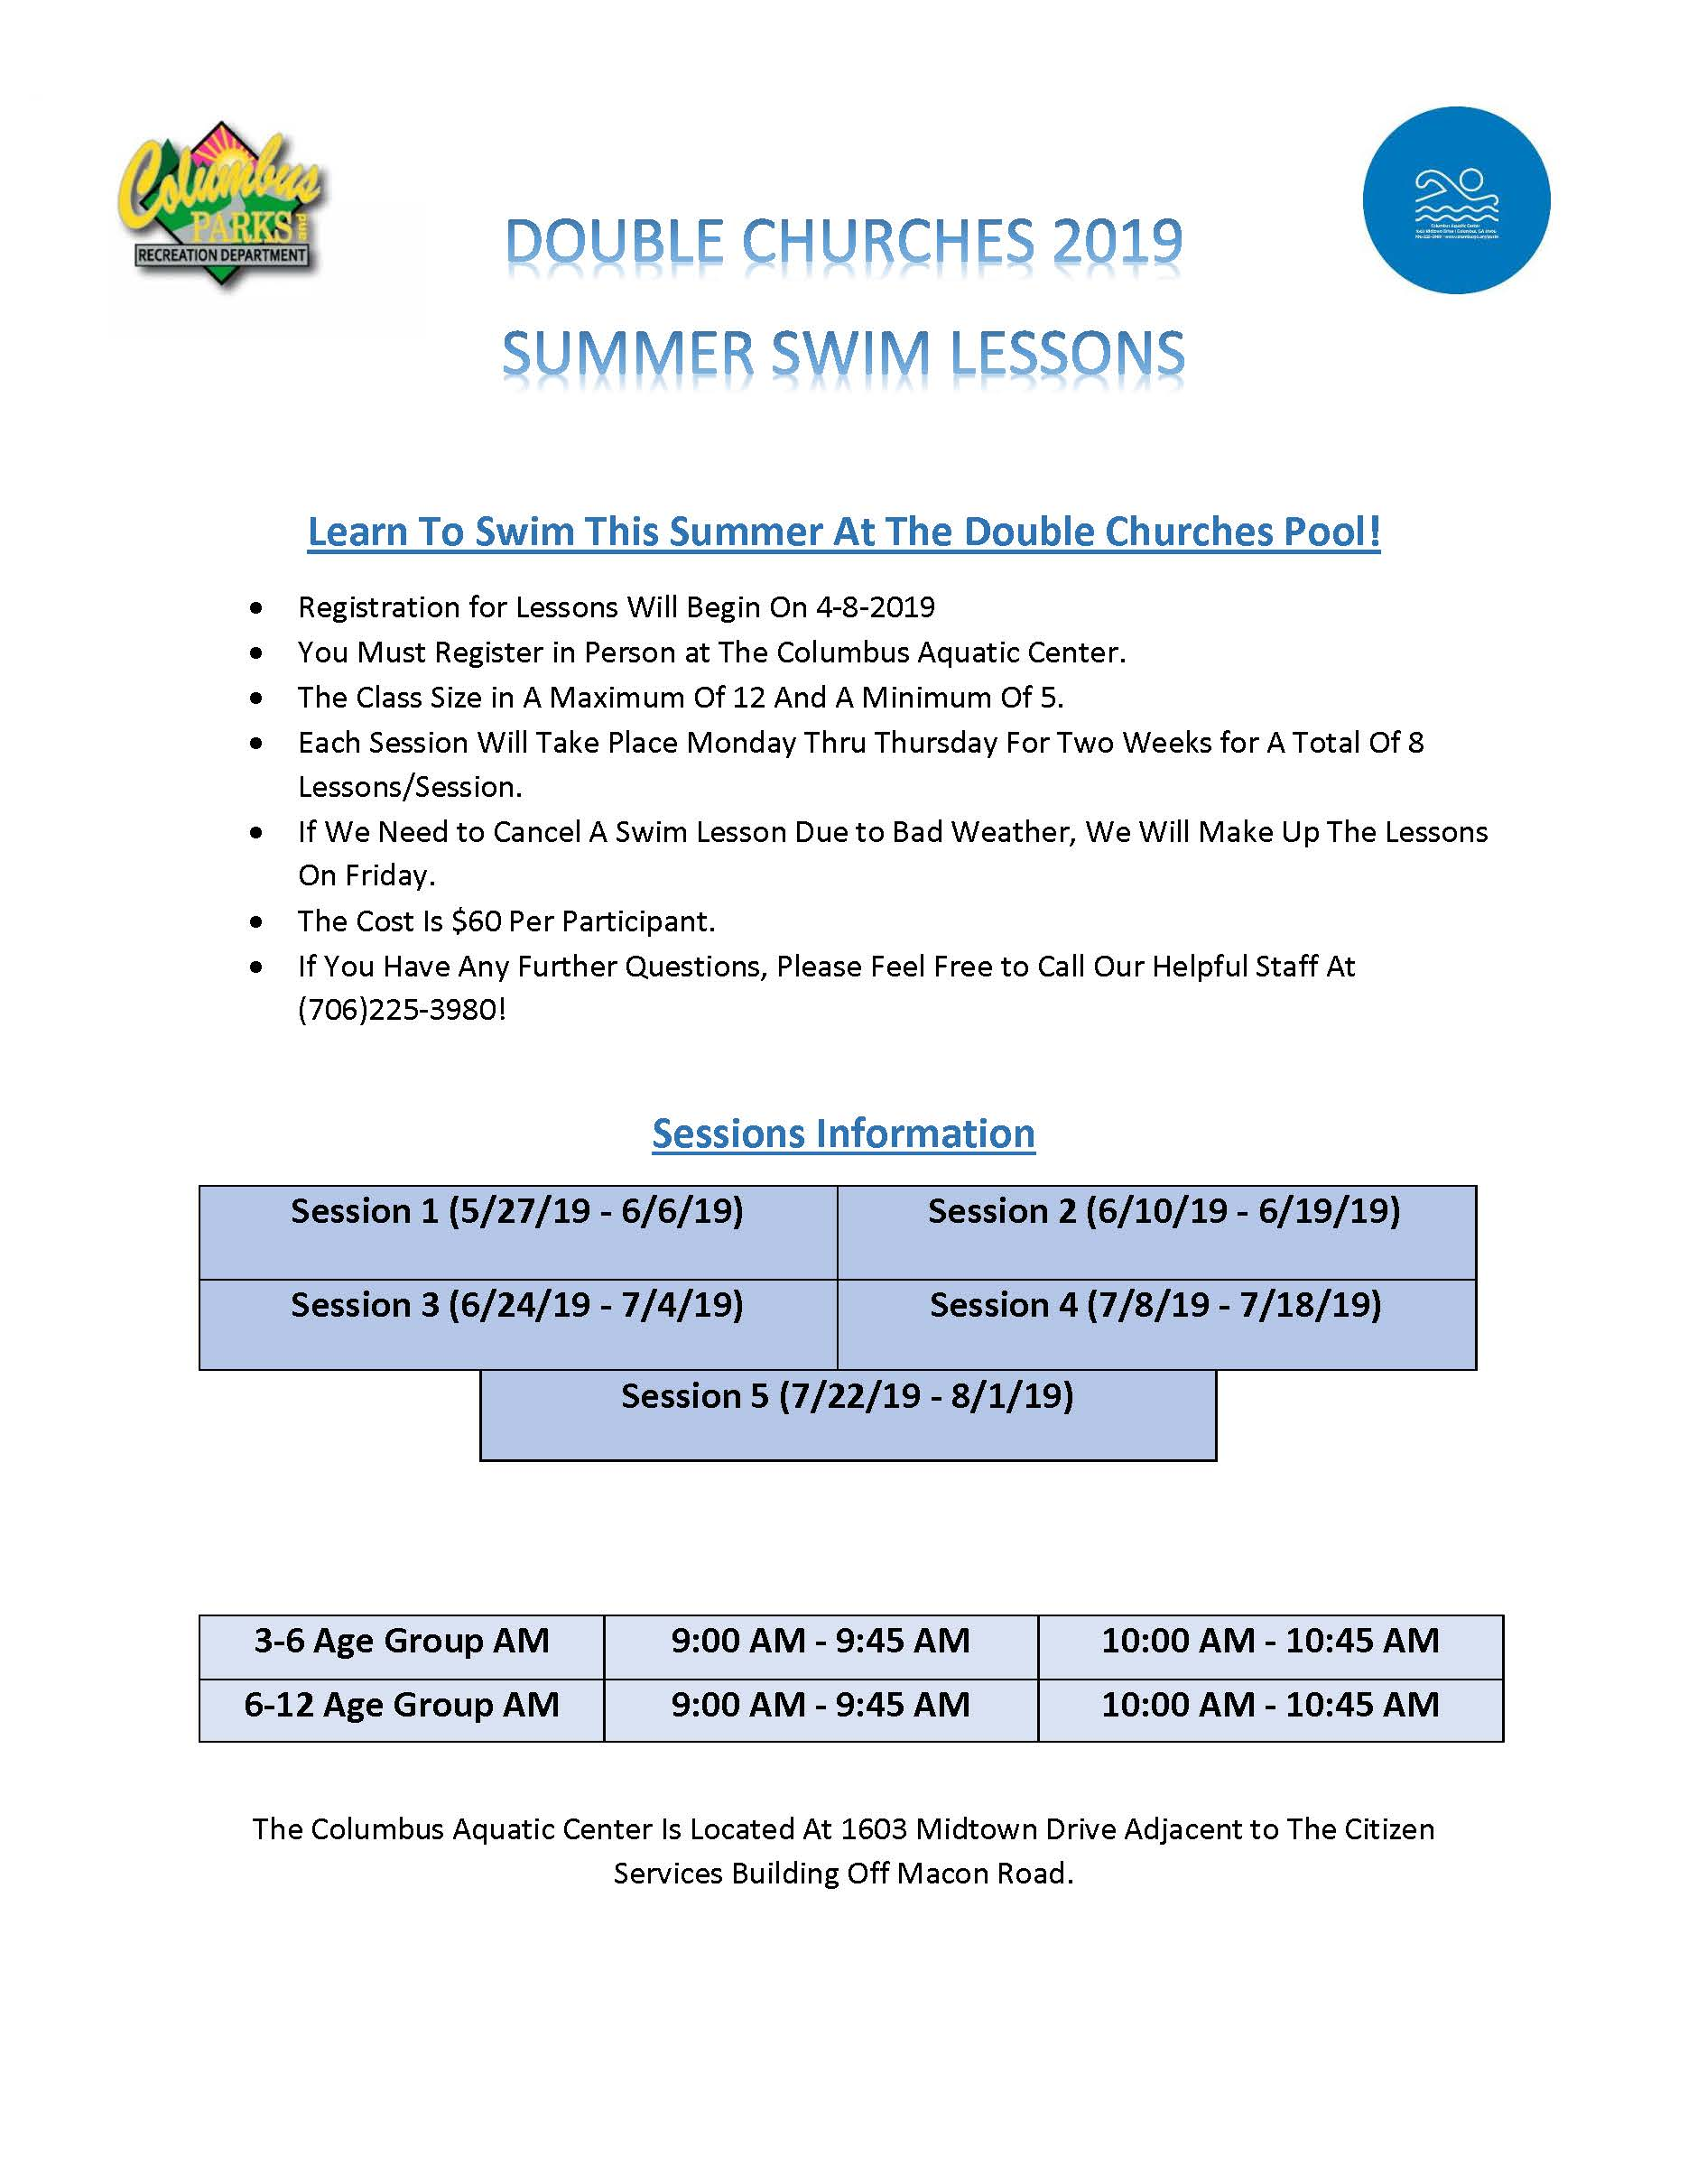 SUMMER 2019 SWIM LESSONS DOUBLE CHURCHES